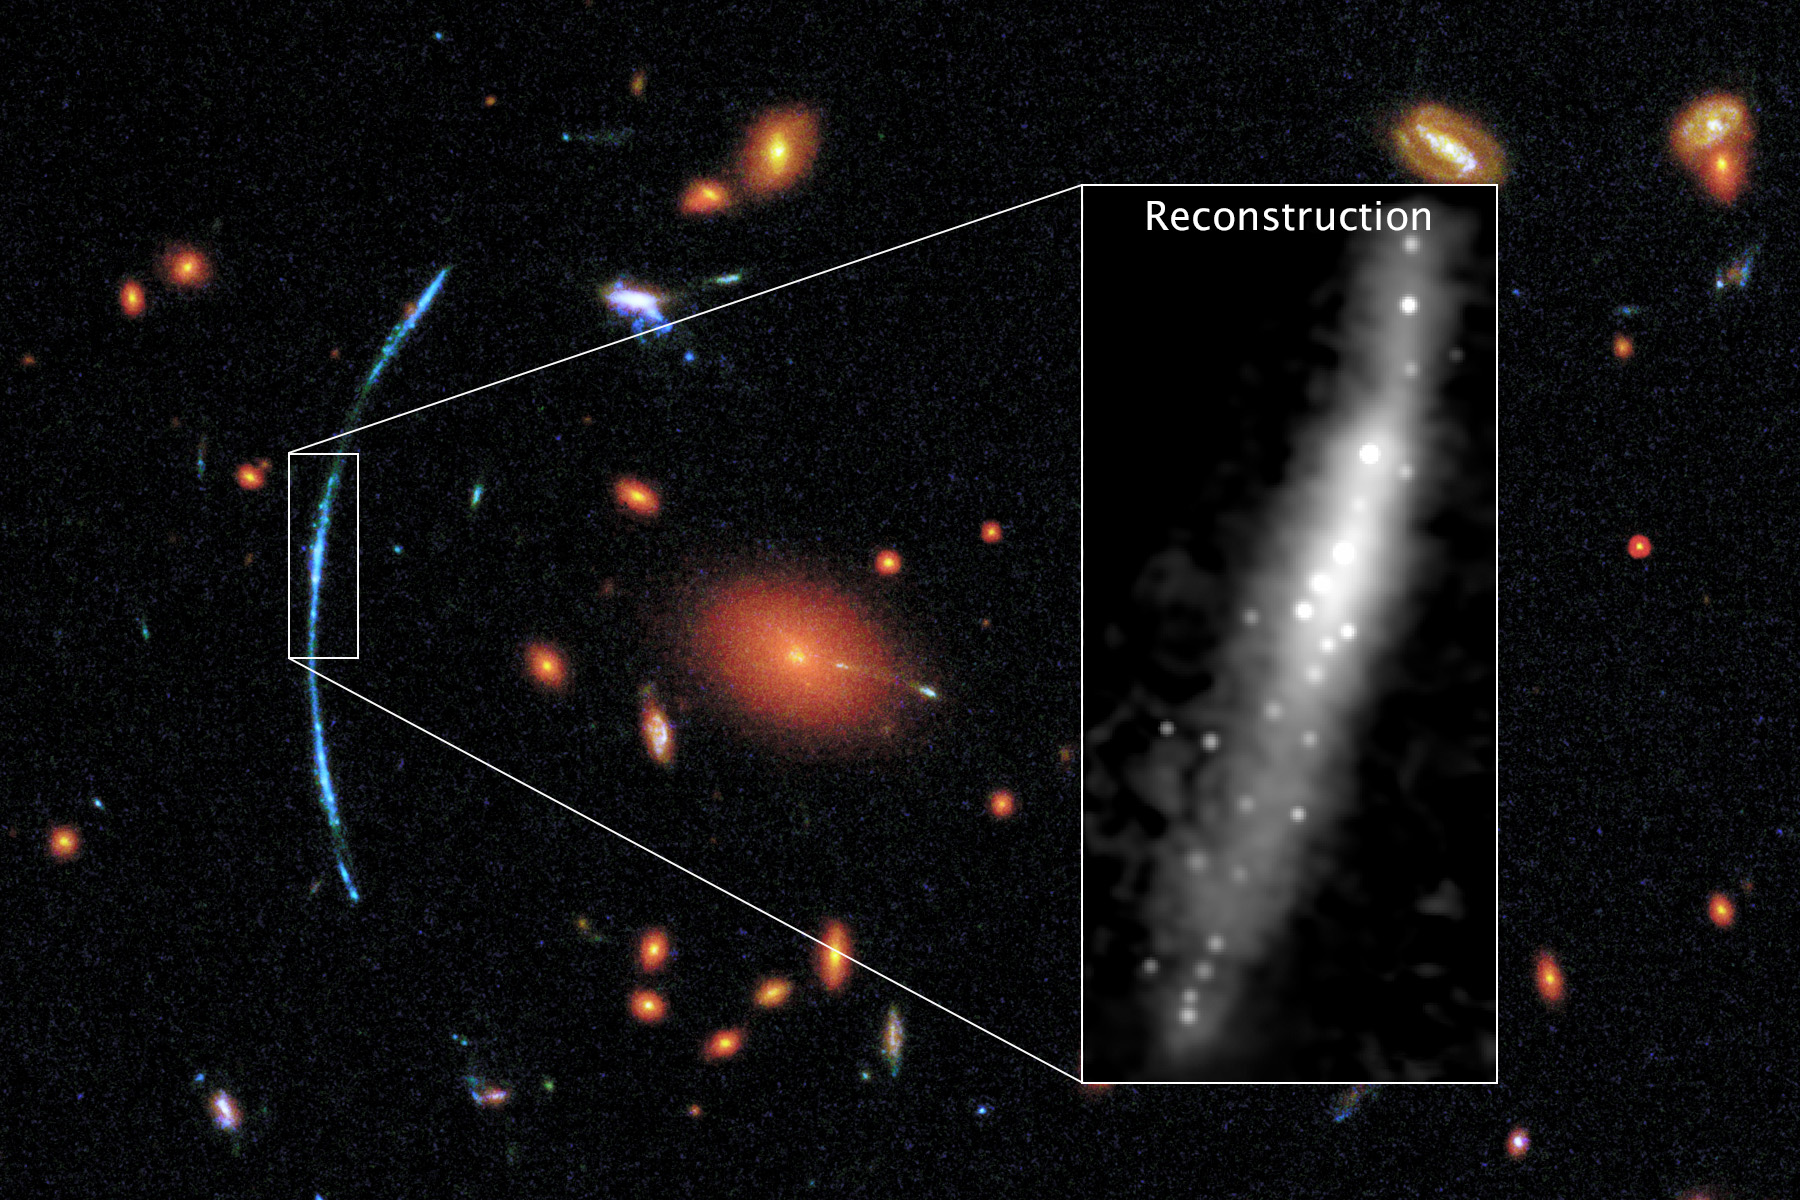 A Hubble photograph of a distant galaxy cluster (spotty blue arc), showing a background galaxy that has been gravitationally lensed. By using the magnifying power of this natural cosmic lens, astronomers have been able to study the background galaxy in detail. Through sophisticated computer processing, they determined how the galaxy's image has been warped by gravity. The image at right shows how the galaxy would look to Hubble without distortions. (HUBBLESITE)